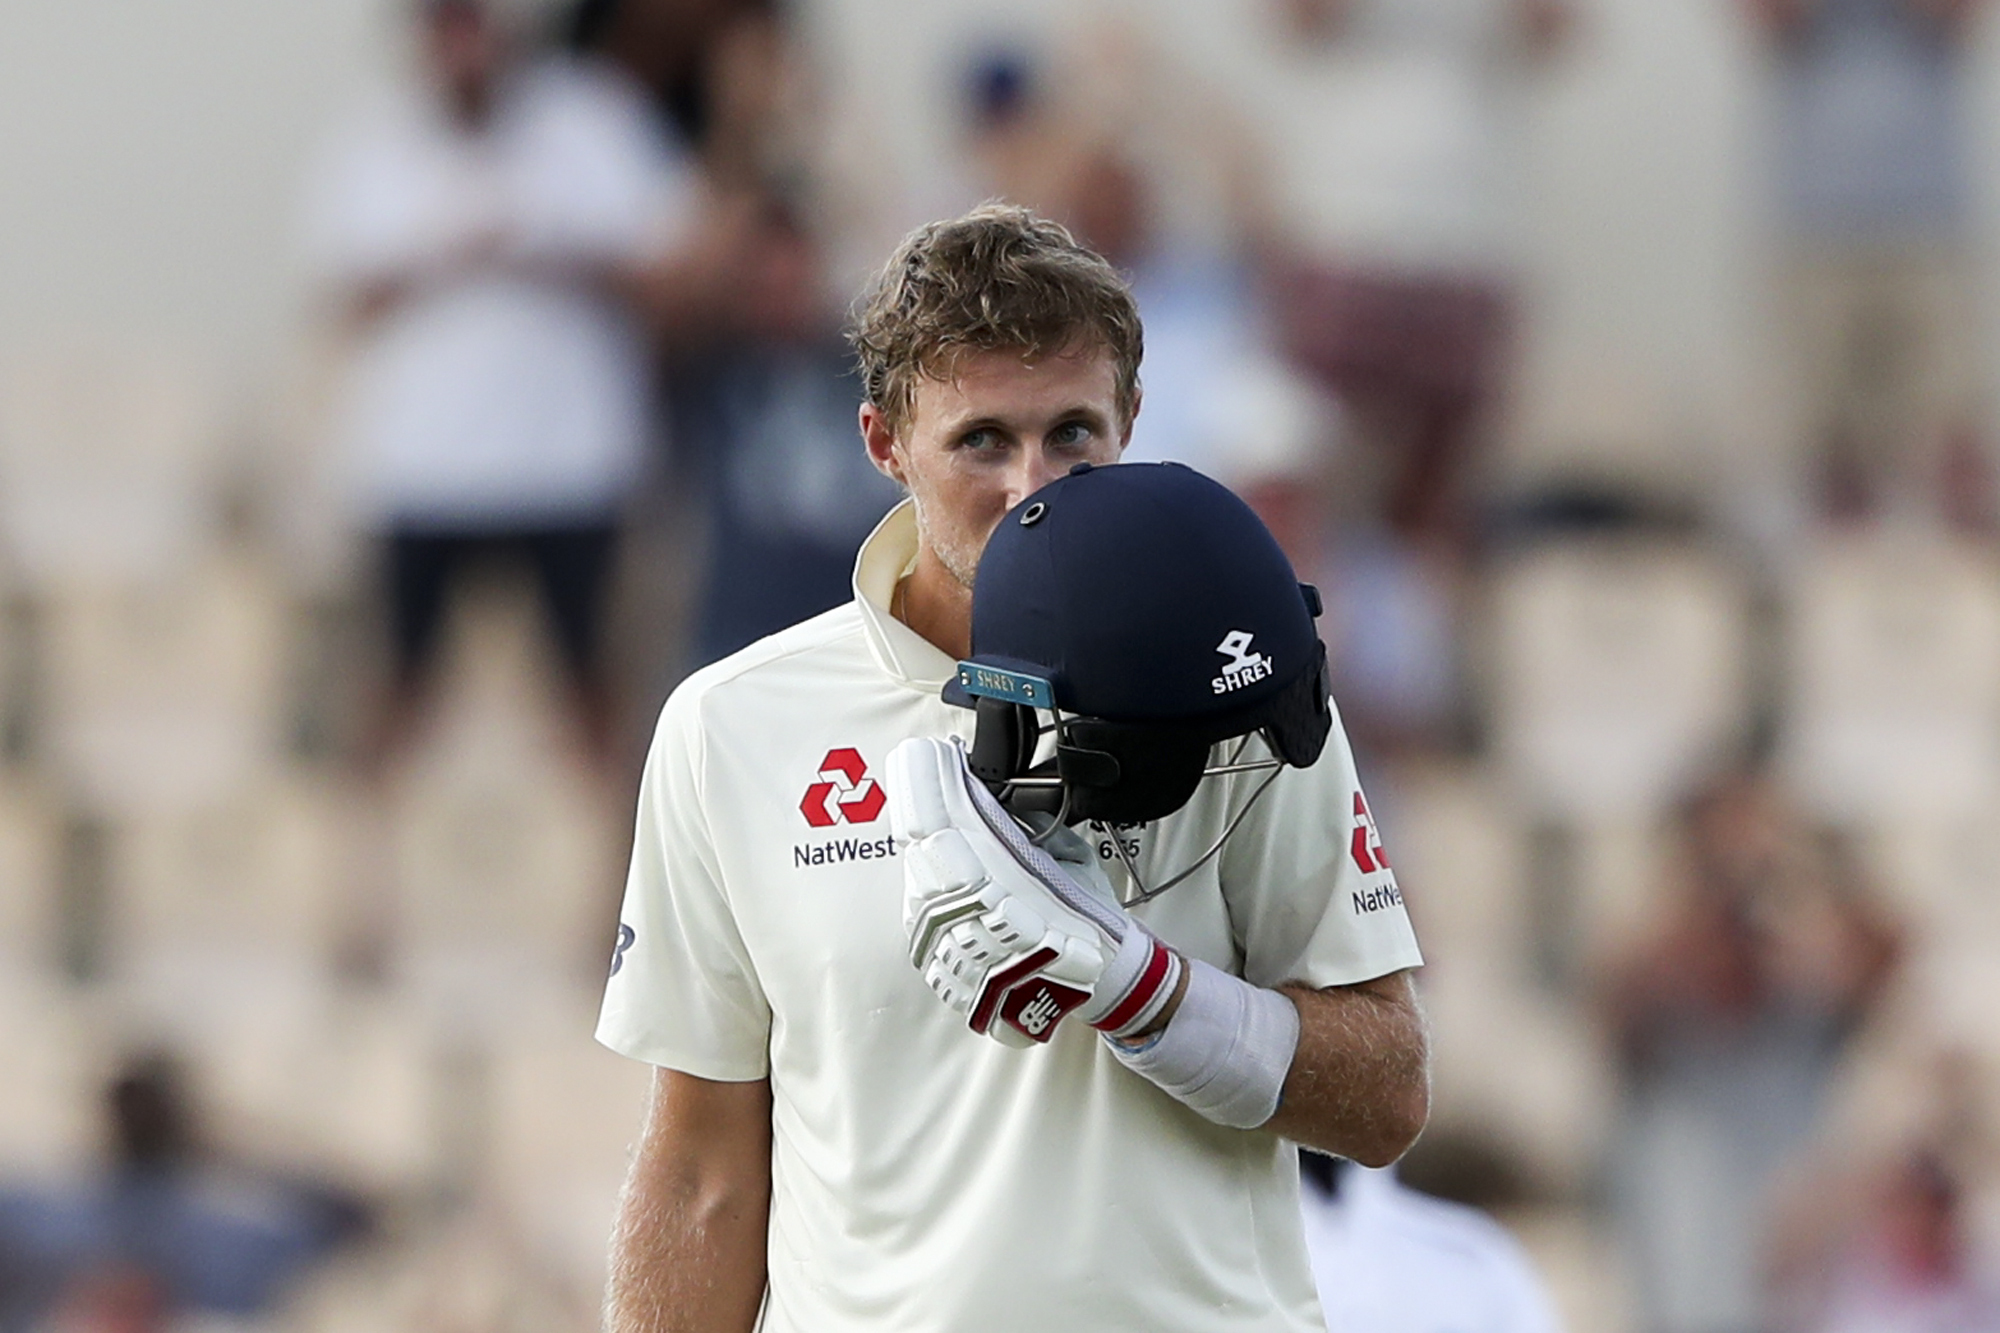 Root told the West Indies bowler that being gay wasn't an insult. Credit: PA